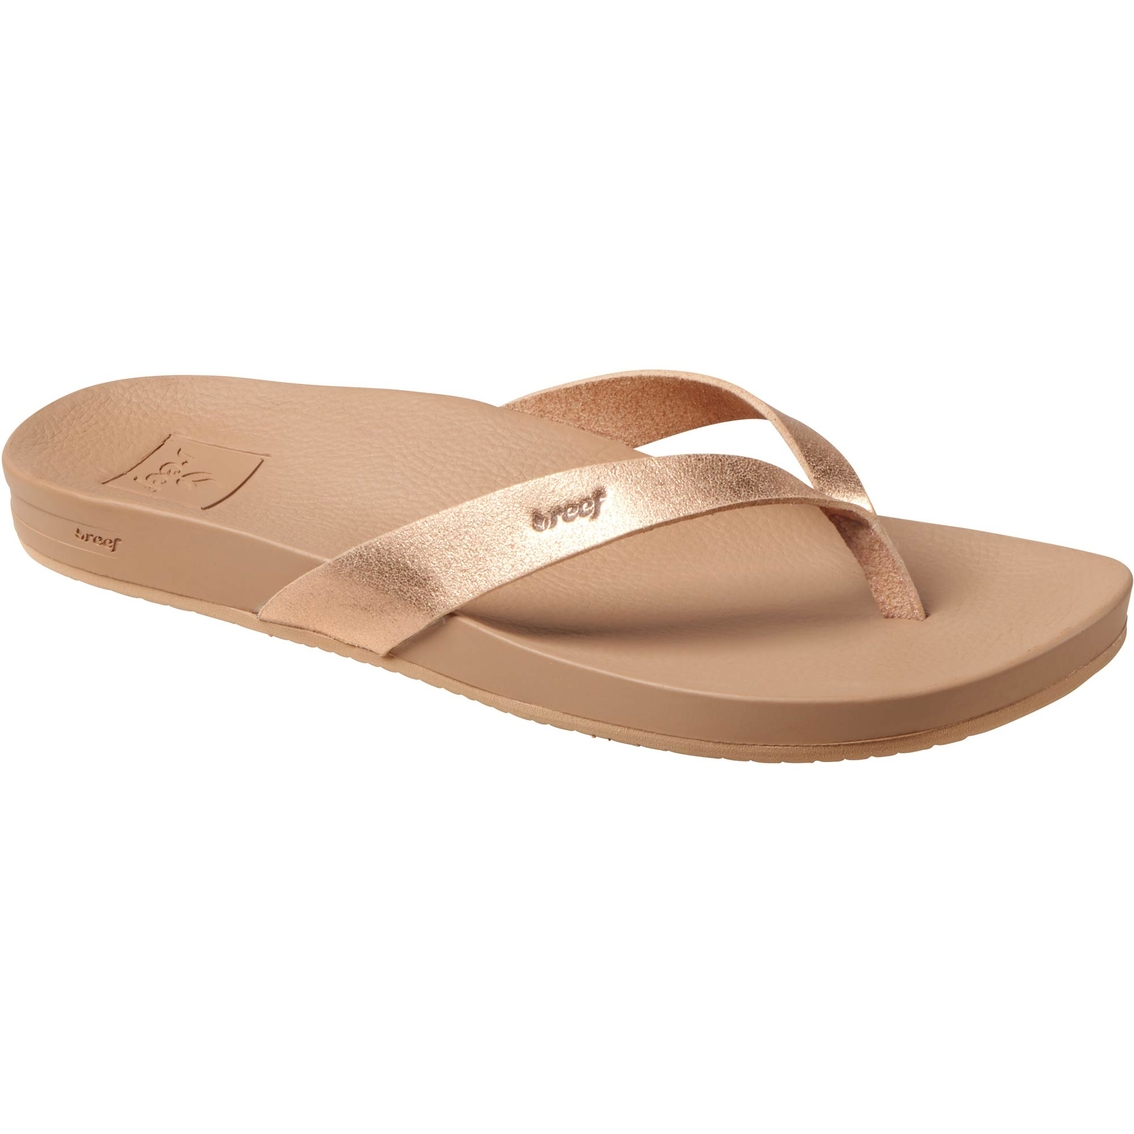 399fad64f9db Reef Women s Cushion Bounce Court Sandals